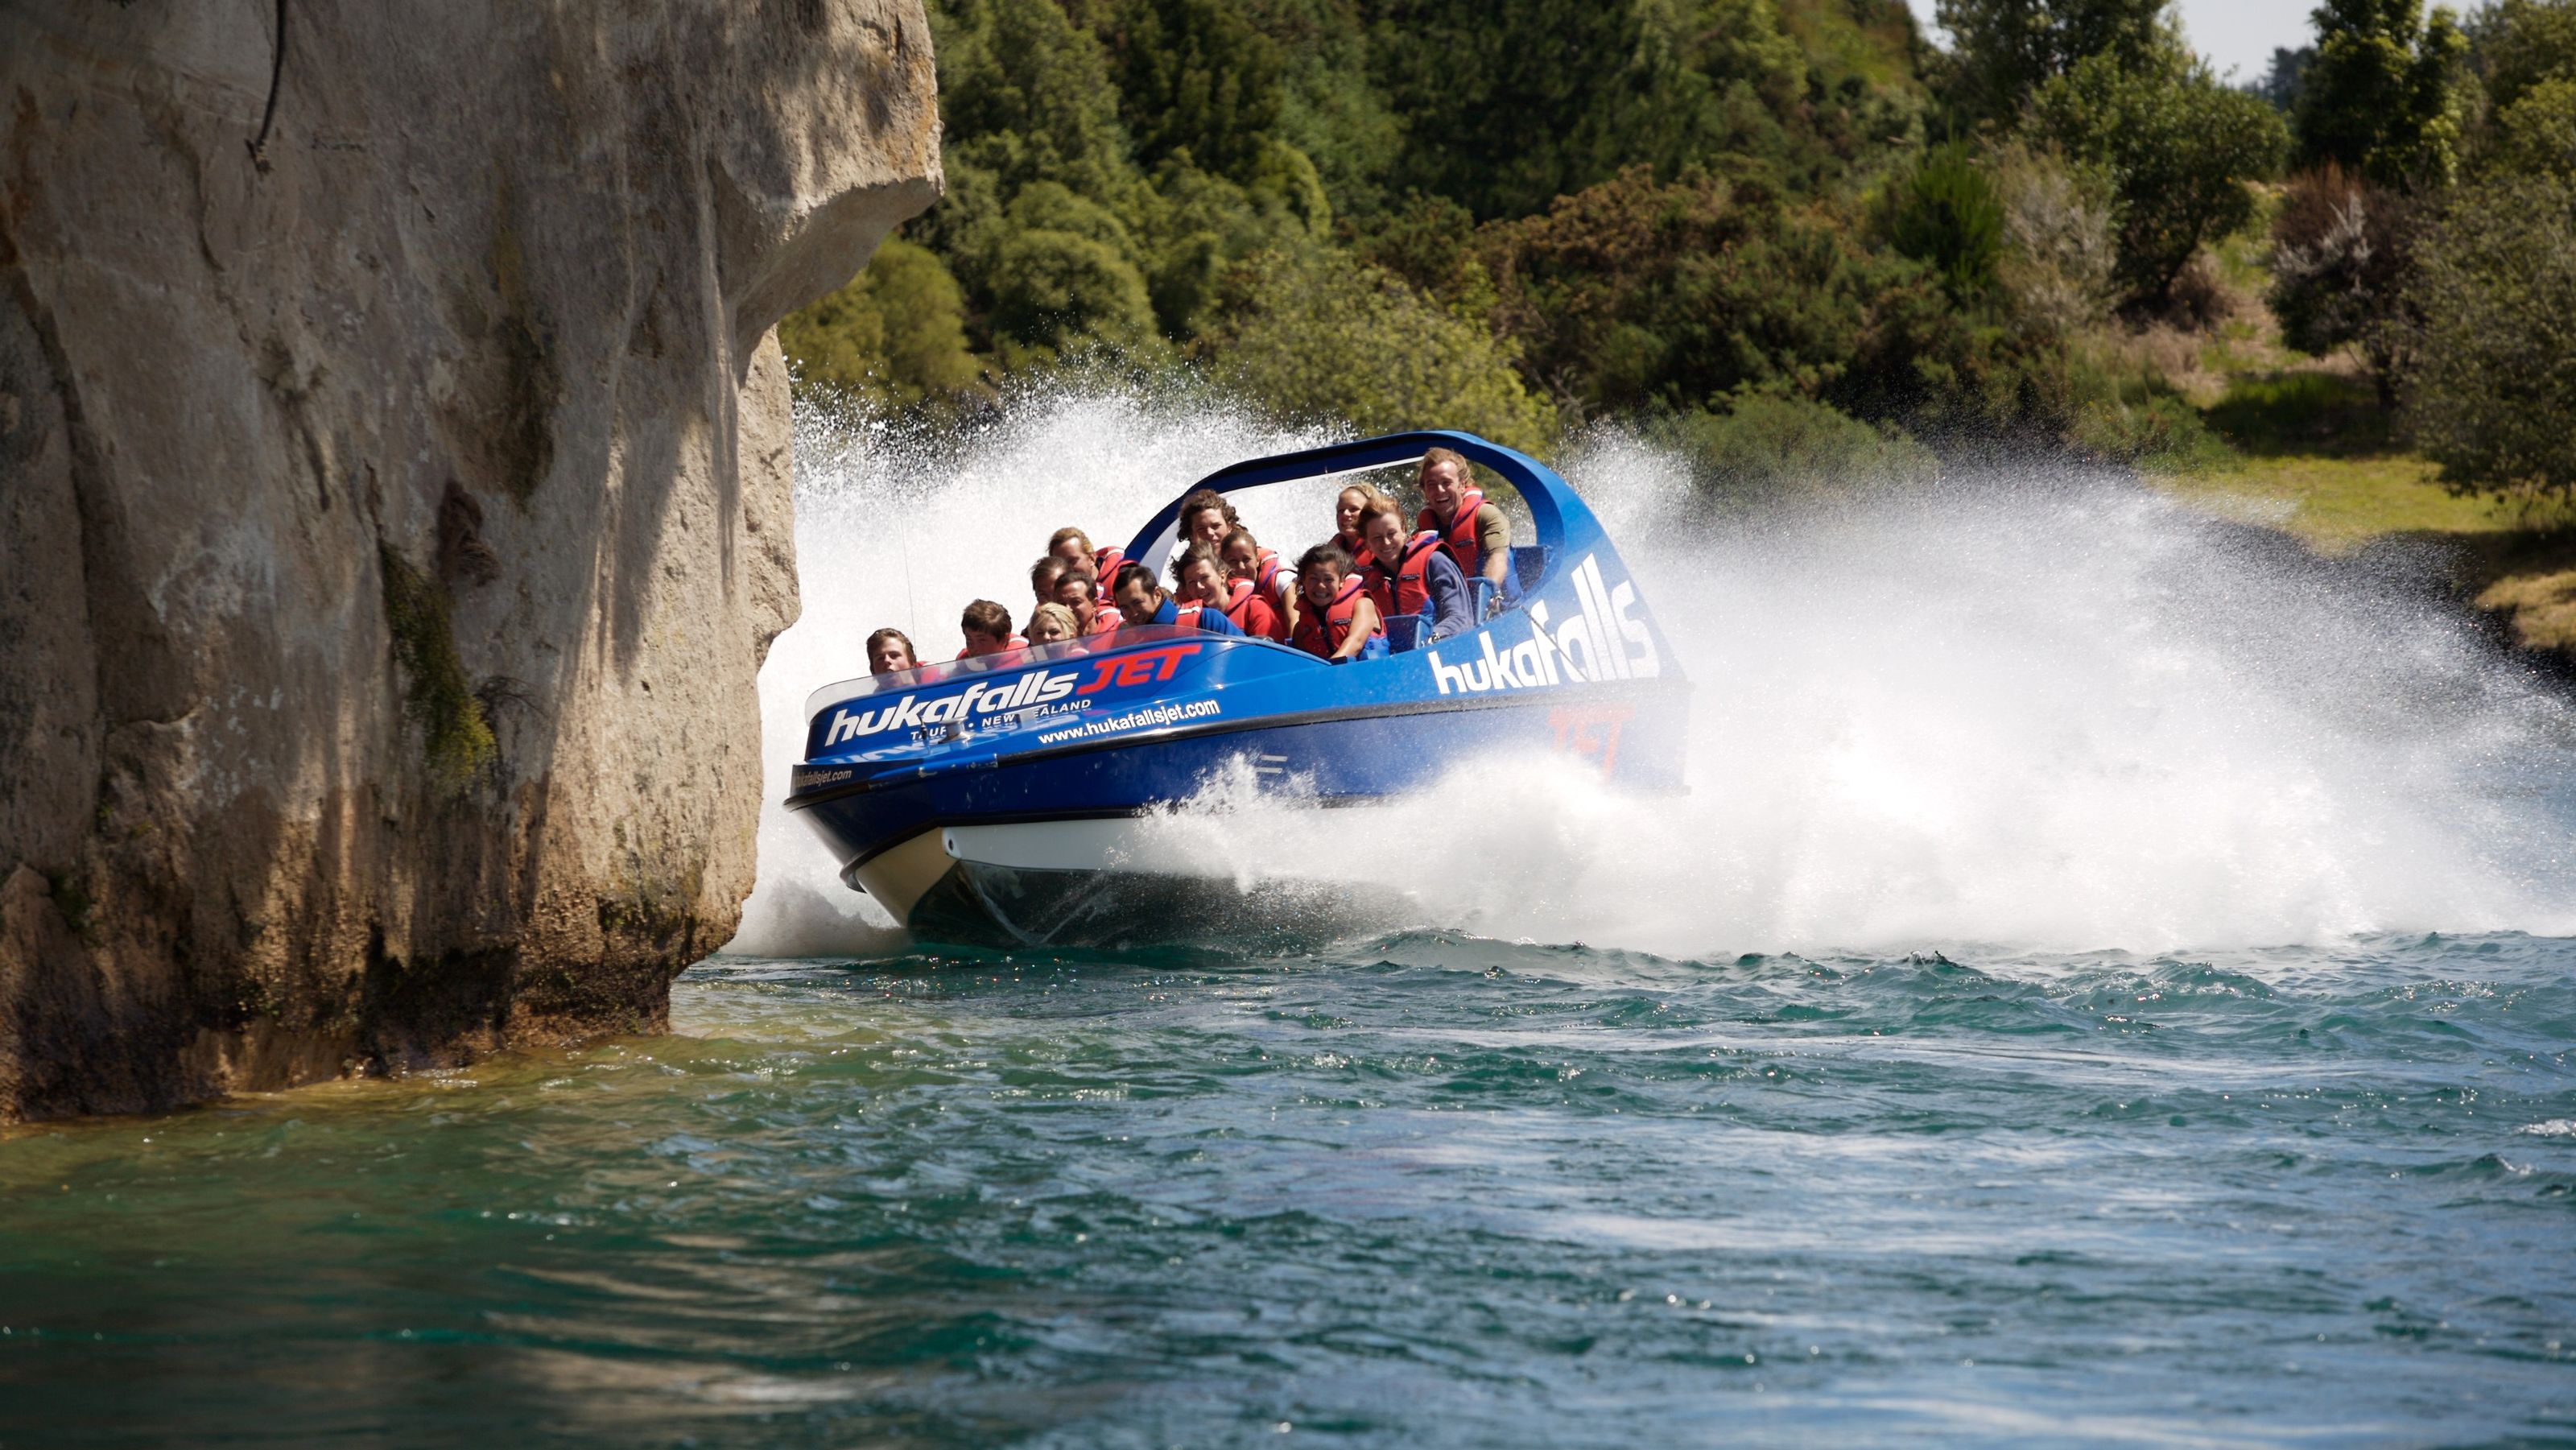 passengers riding in a jet boat near rock wall in Taupo